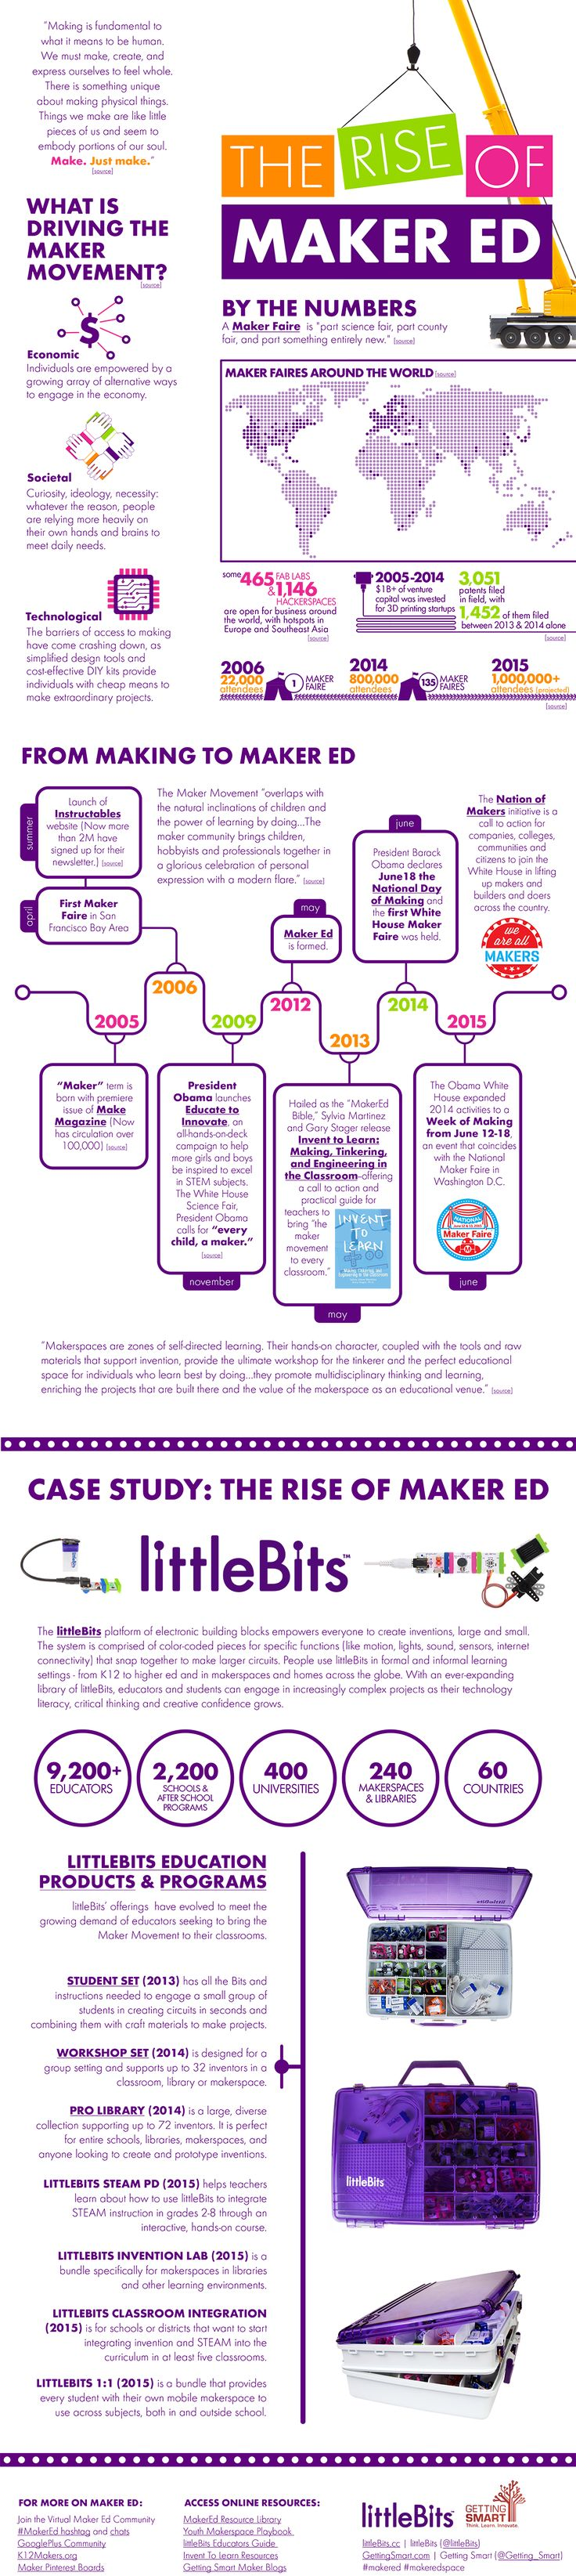 littleBits-GettingSmart infographic-Final-1000pxw